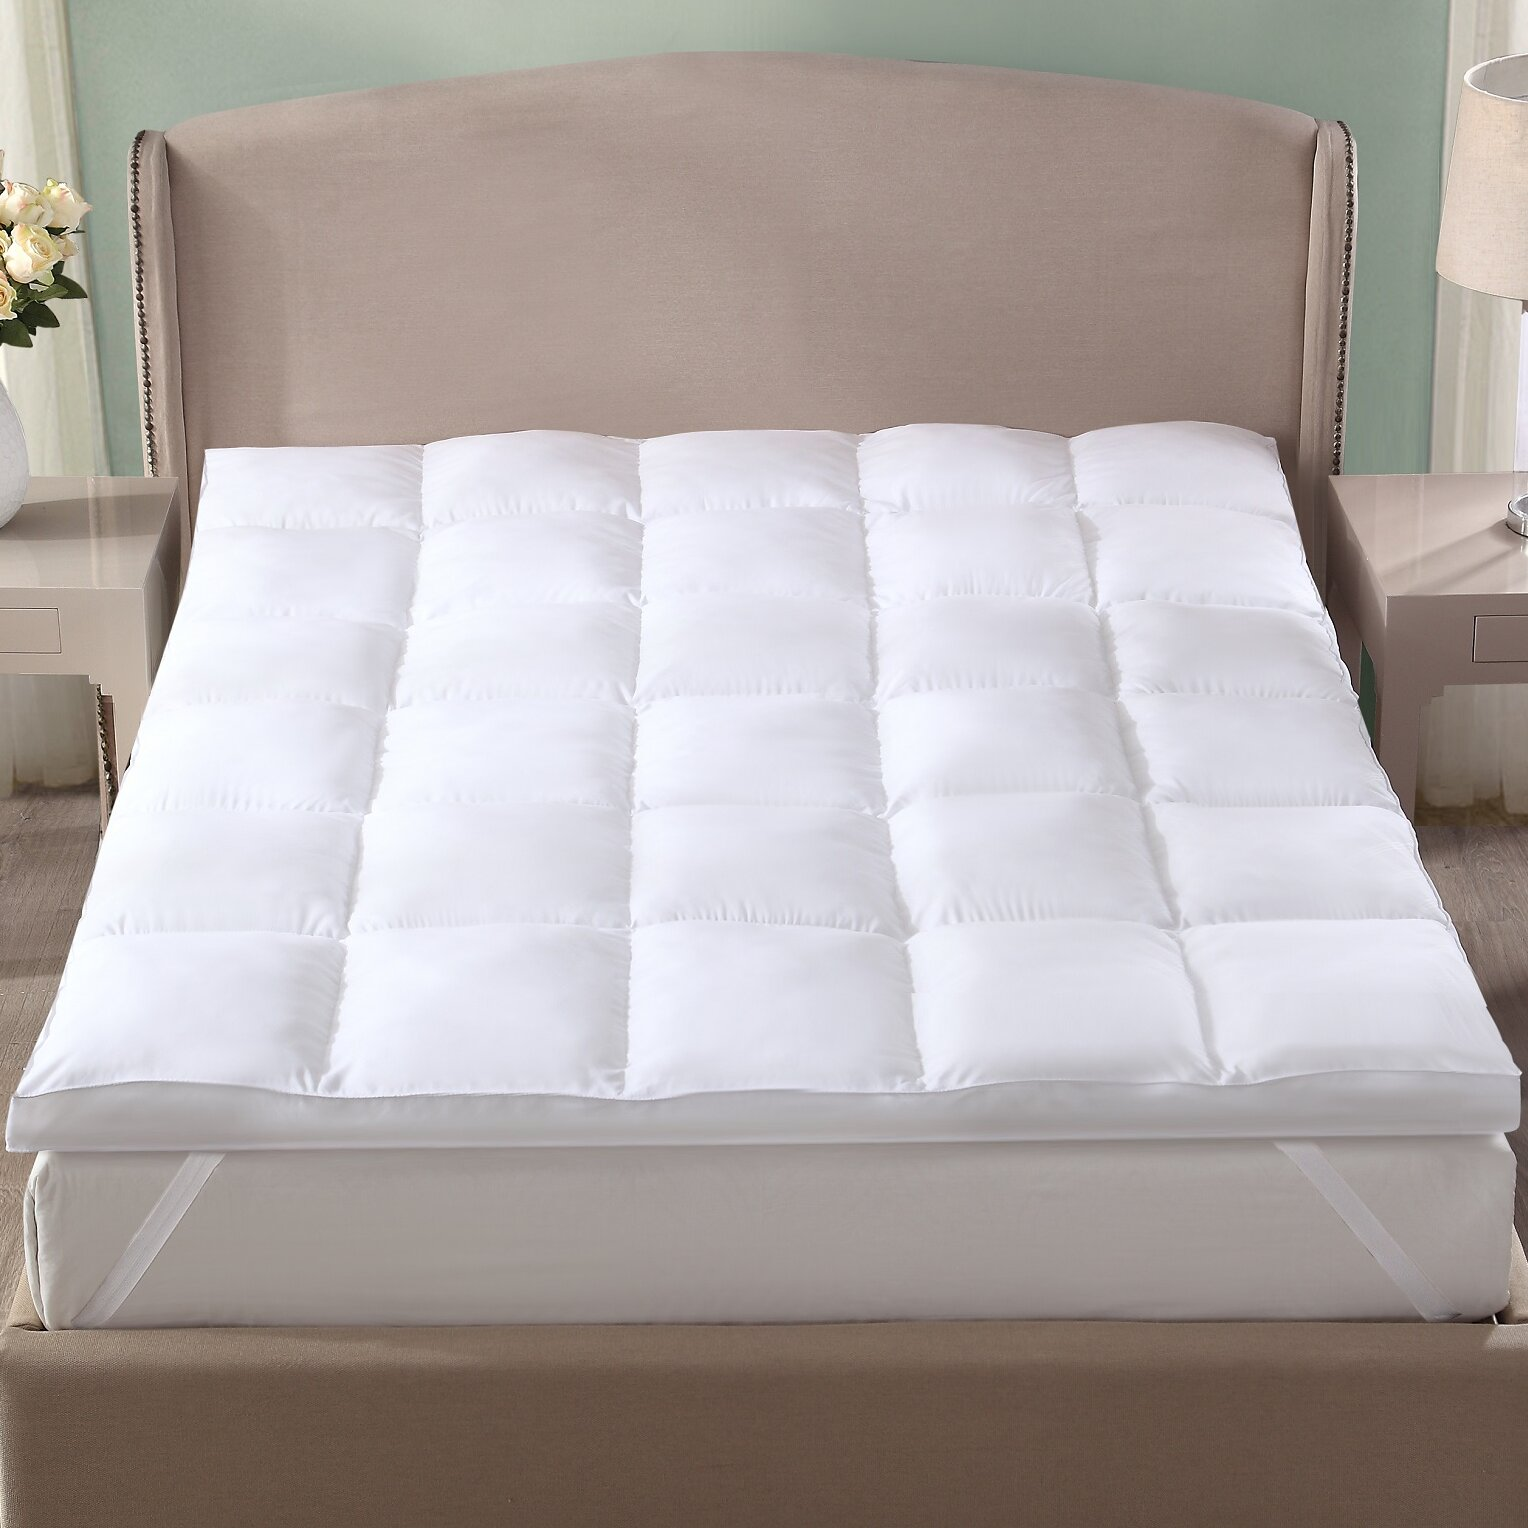 co mattress products dream pad tax designs washable wool id ltd topper